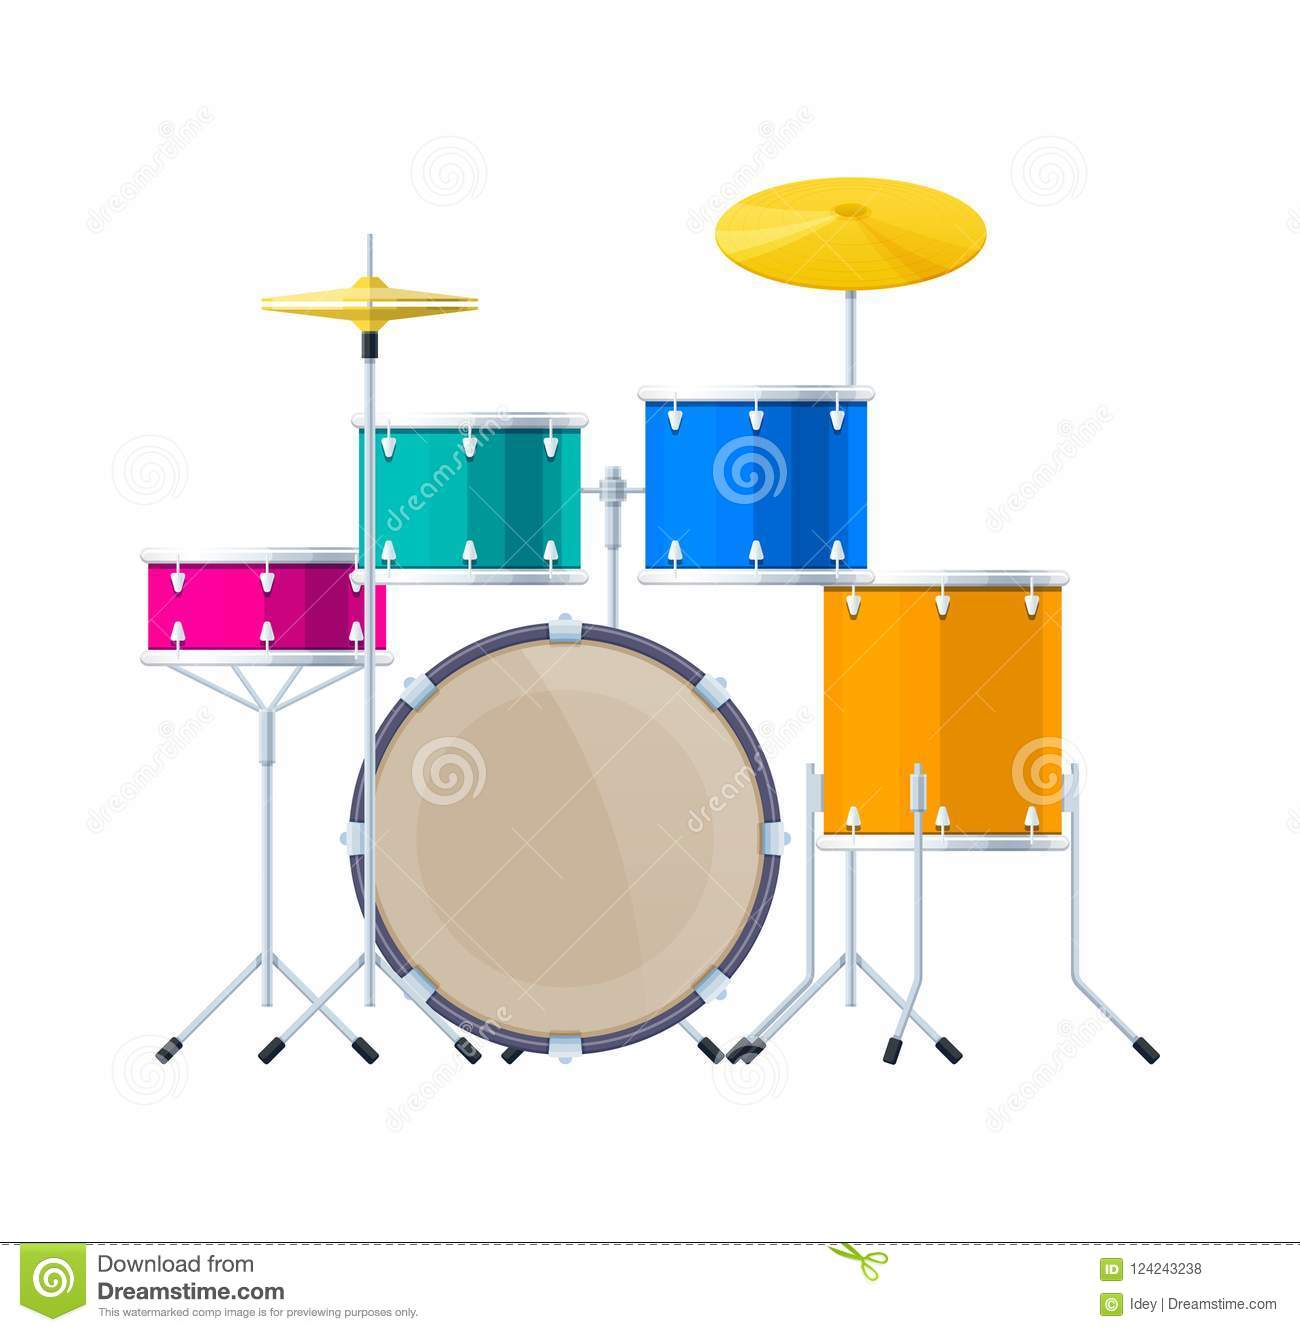 hight resolution of realistic percussion musical instrument drum set sound barrels plates wands